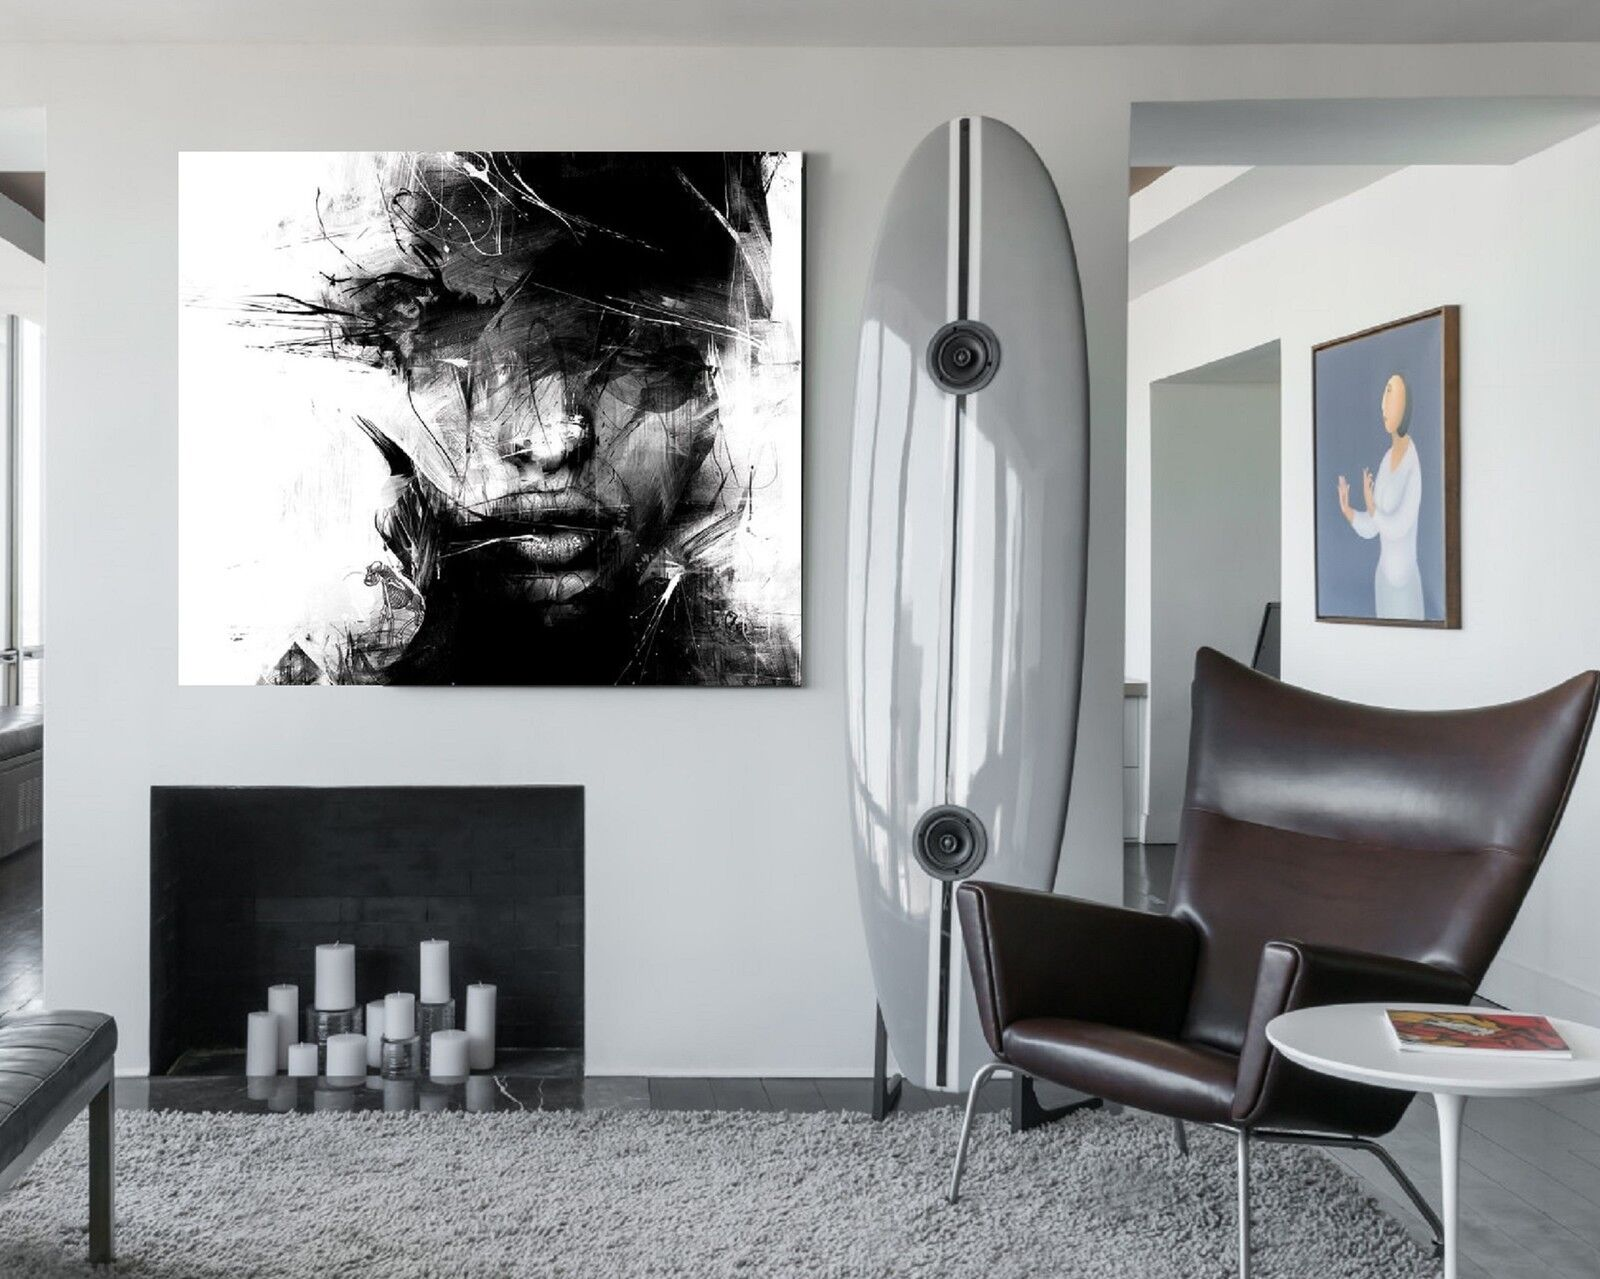 xxl bild abstrakt canvas ikea 120x100x5 loft design leinwand gem lde premi r eur 74 99. Black Bedroom Furniture Sets. Home Design Ideas